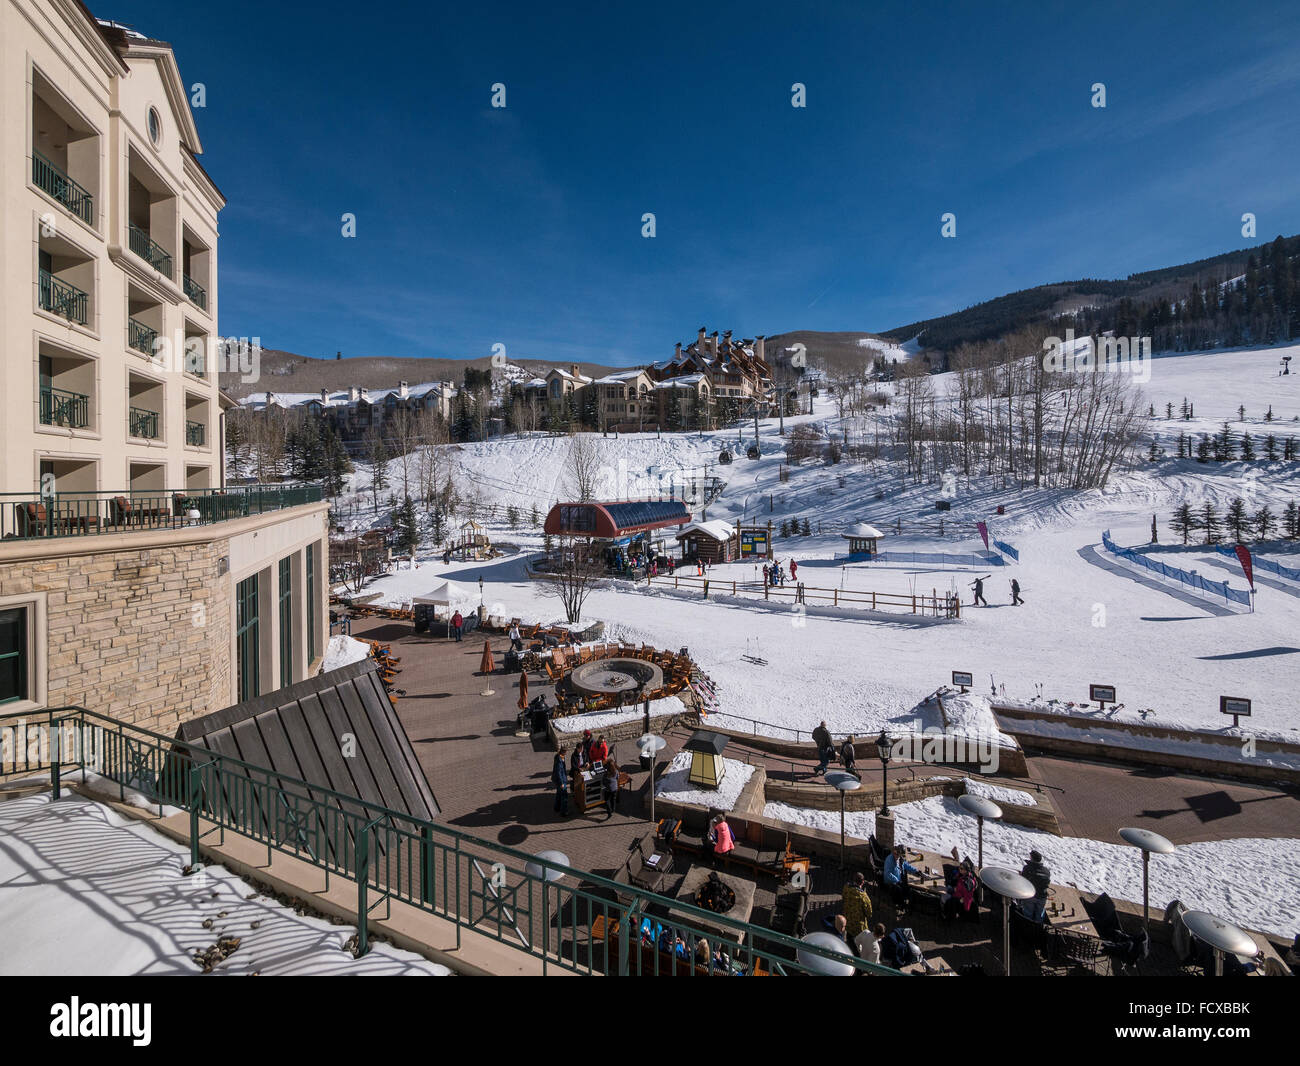 Base area and Buckaroo Express I gondola as seen from the Park Hyatt, Beaver Creek Ski Resort, Avon, Colorado. - Stock Image